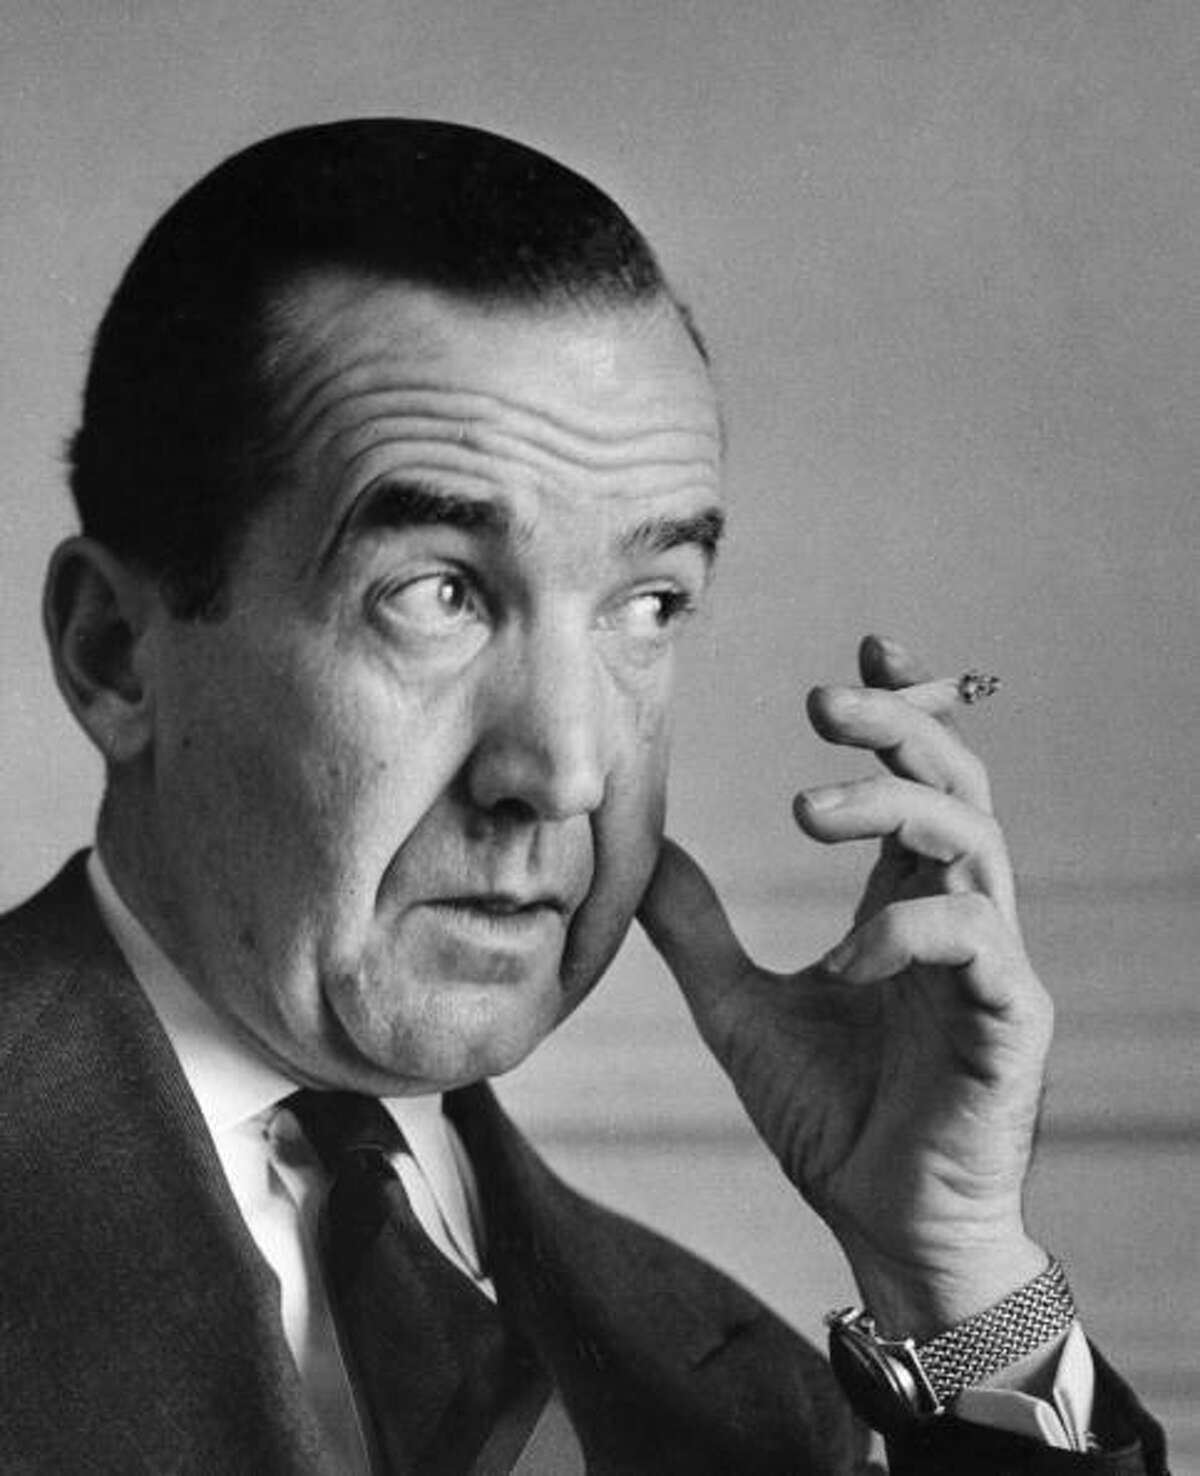 Broadcaster Edward R. Murrow is best known for his television reports on Senator Joseph McCarthy. Born in North Carolina, Murrow was raised in Skagit County and graduated from Washington State University. He never worked for a local TV station, but, then again, they didn't exist when he started out in 1937.